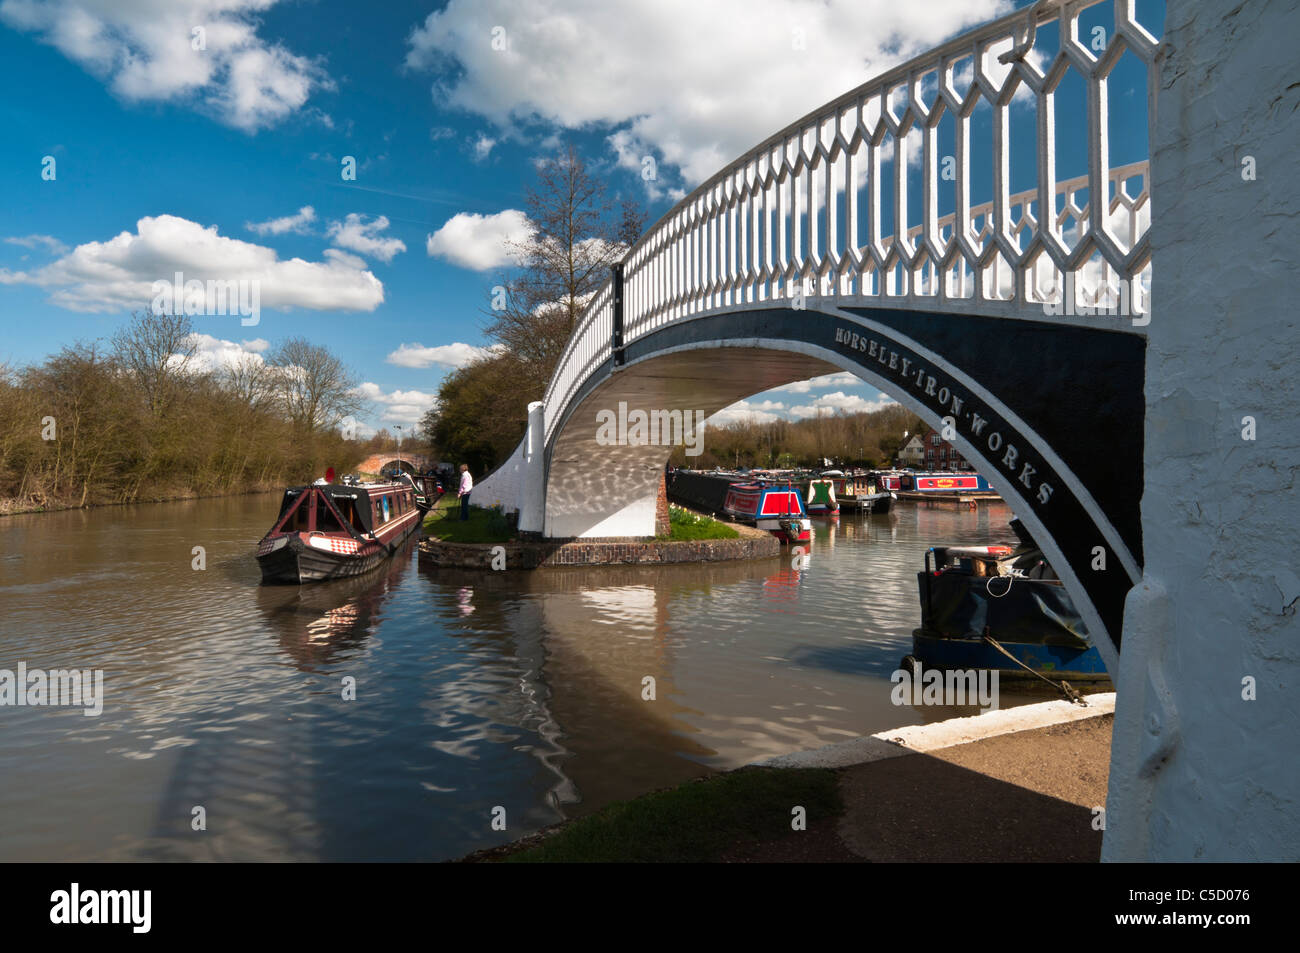 Narrowboat being moored on the Grand Union Canal beside the ornate arched bridge at Braunston Marina, Northamptonshire, - Stock Image